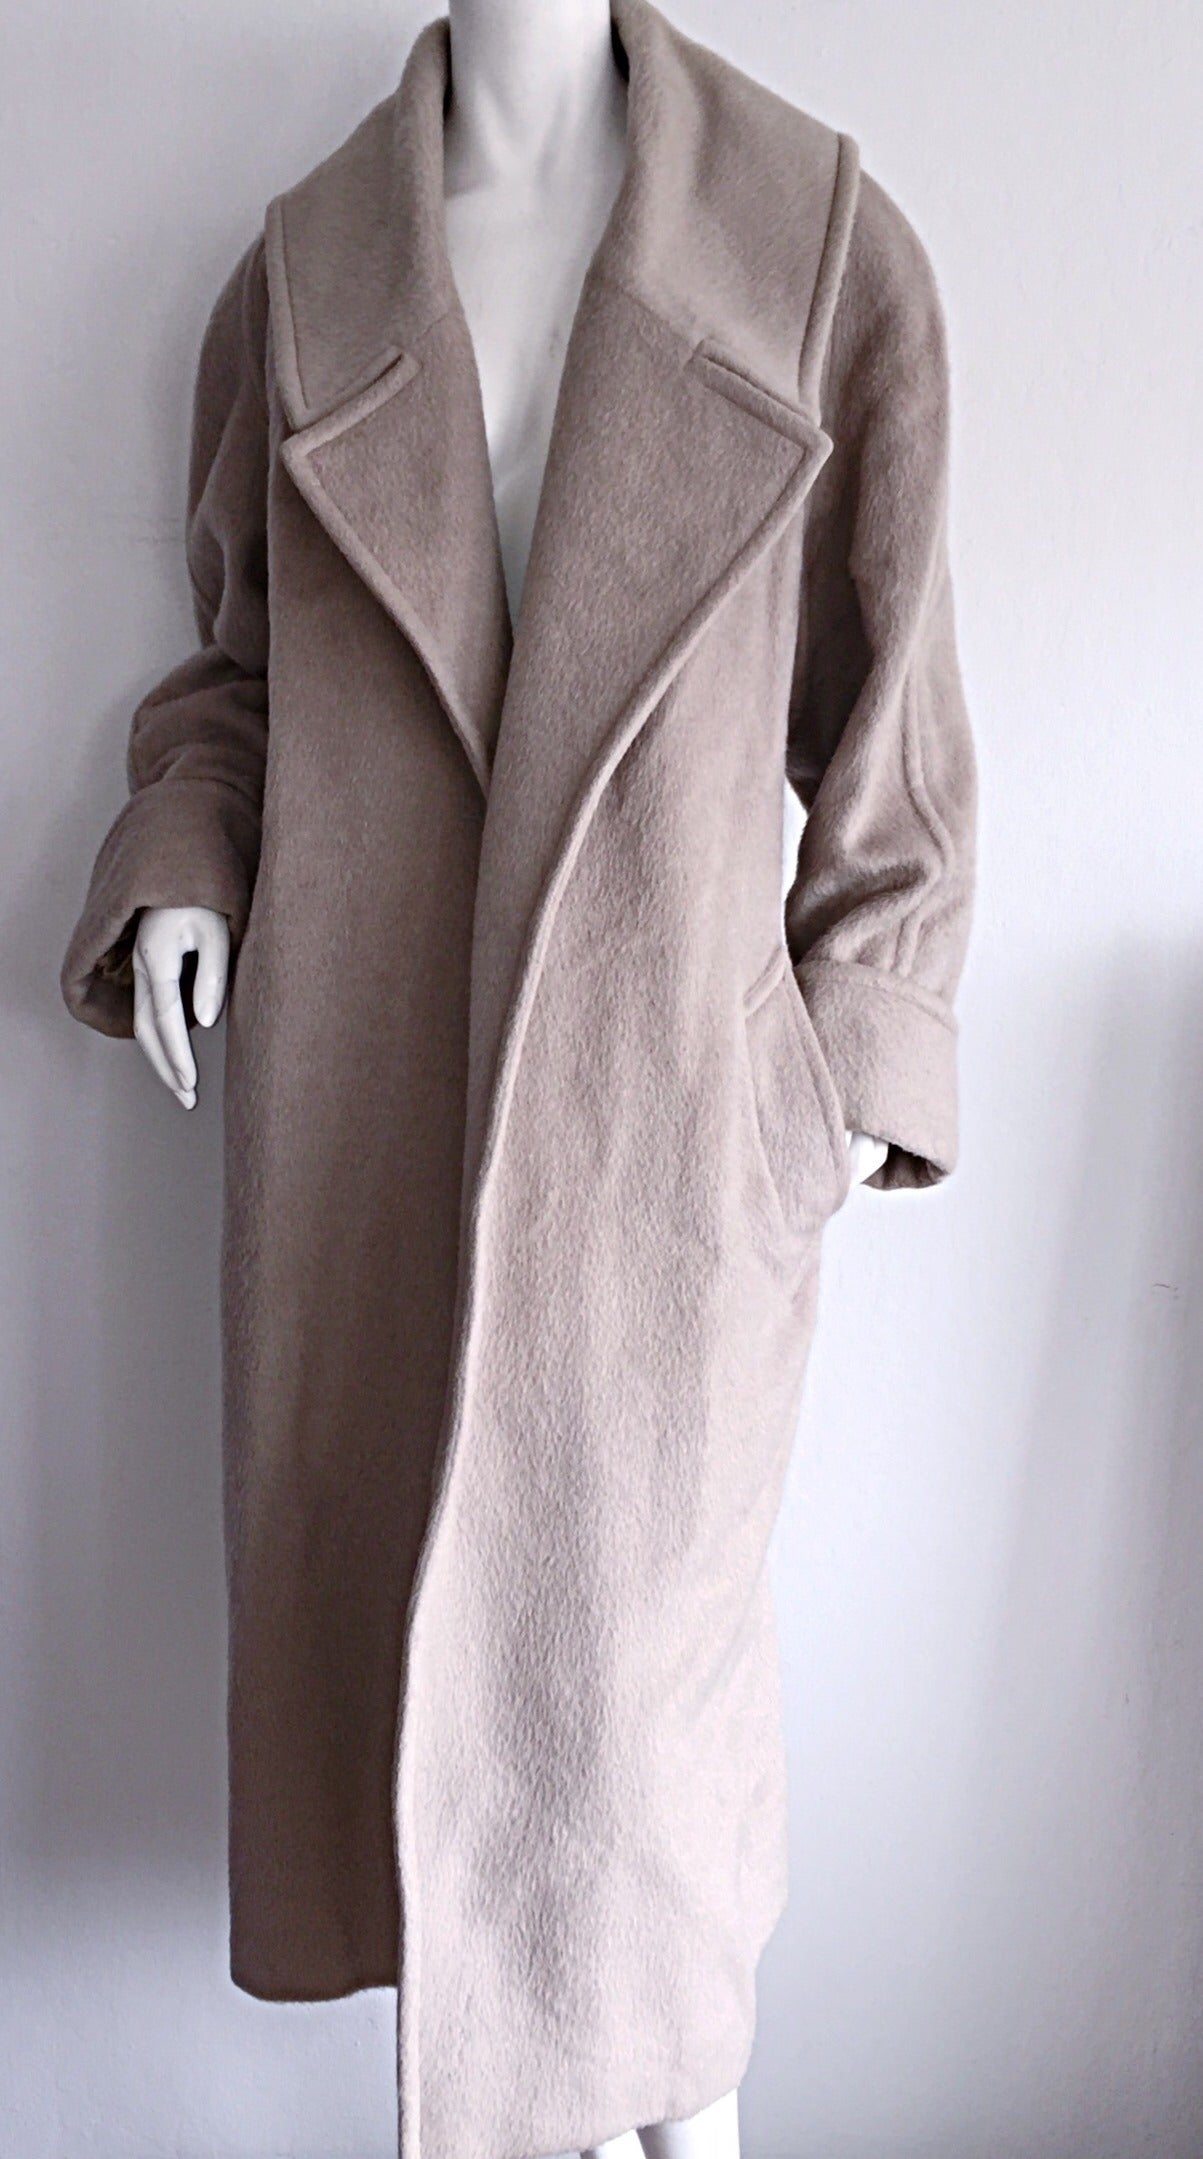 Fabulous vintage Guy Laroche blanket coat! Words cannot even begin to describe how stylish, yet utterly comfortable this jacket is!!! Wool and Alpaca blend. Neutral taupe color, that goes with everything. Belt can be worn a number of ways. Can be